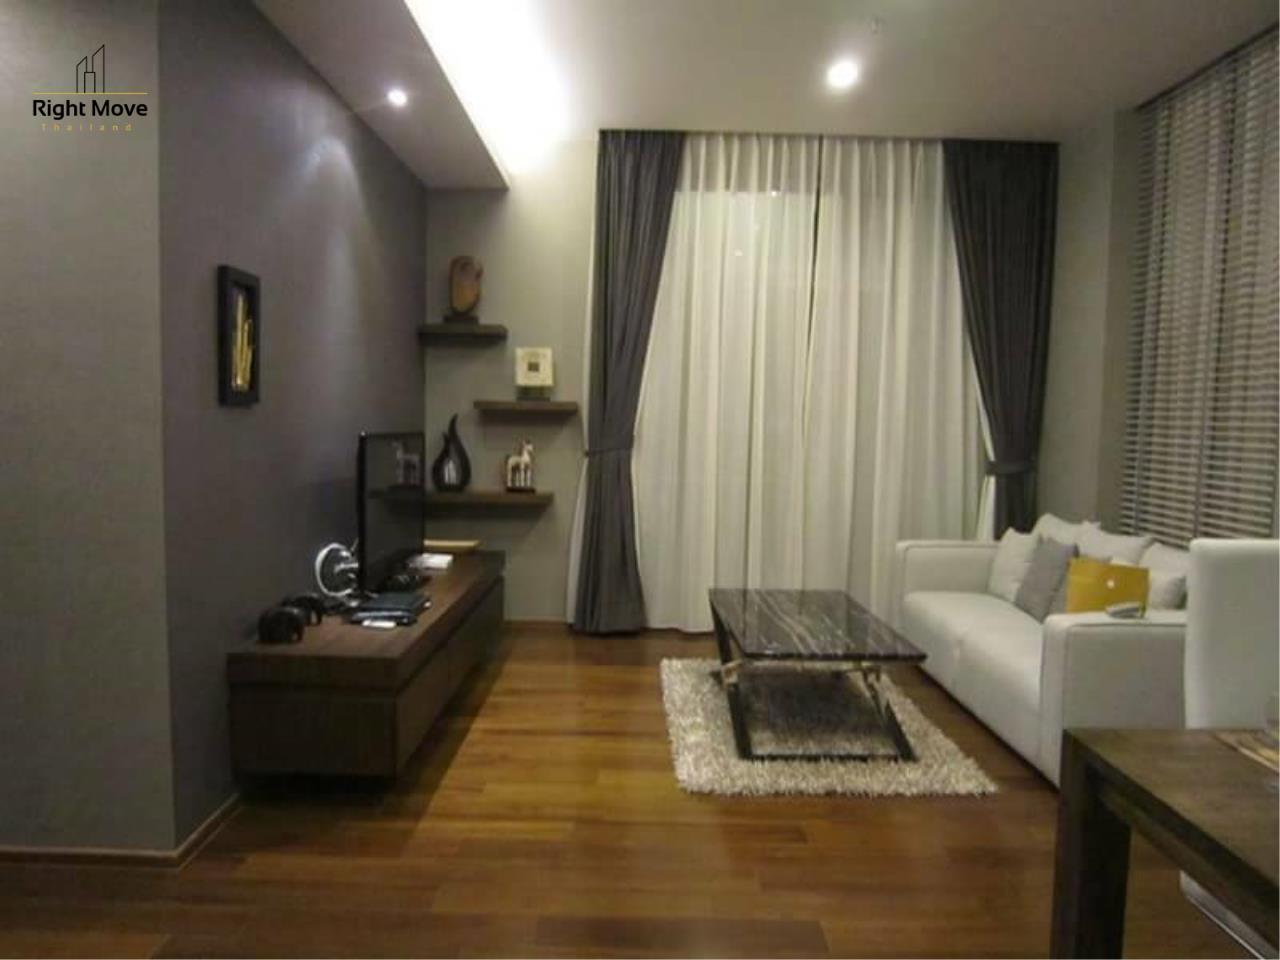 Right Move Thailand Agency's CS1270 Quattro by Sansiri For Sale - 21,300,000 THB - 2 Bedrooms - 92 Sqm  2